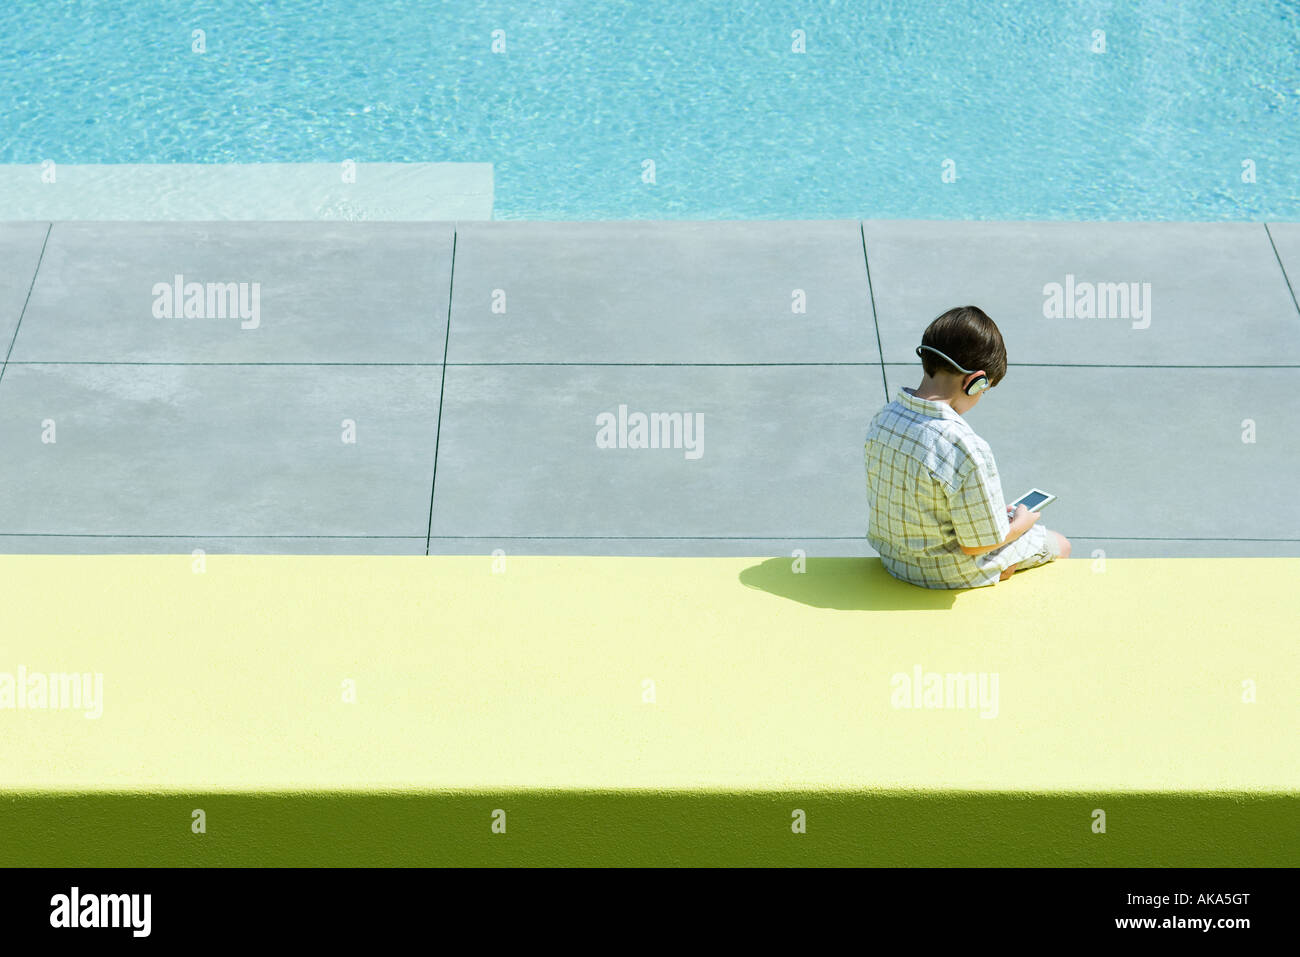 Boy sitting by swimming pool, using handheld electronic device, wearing headphones, rear view Stock Photo